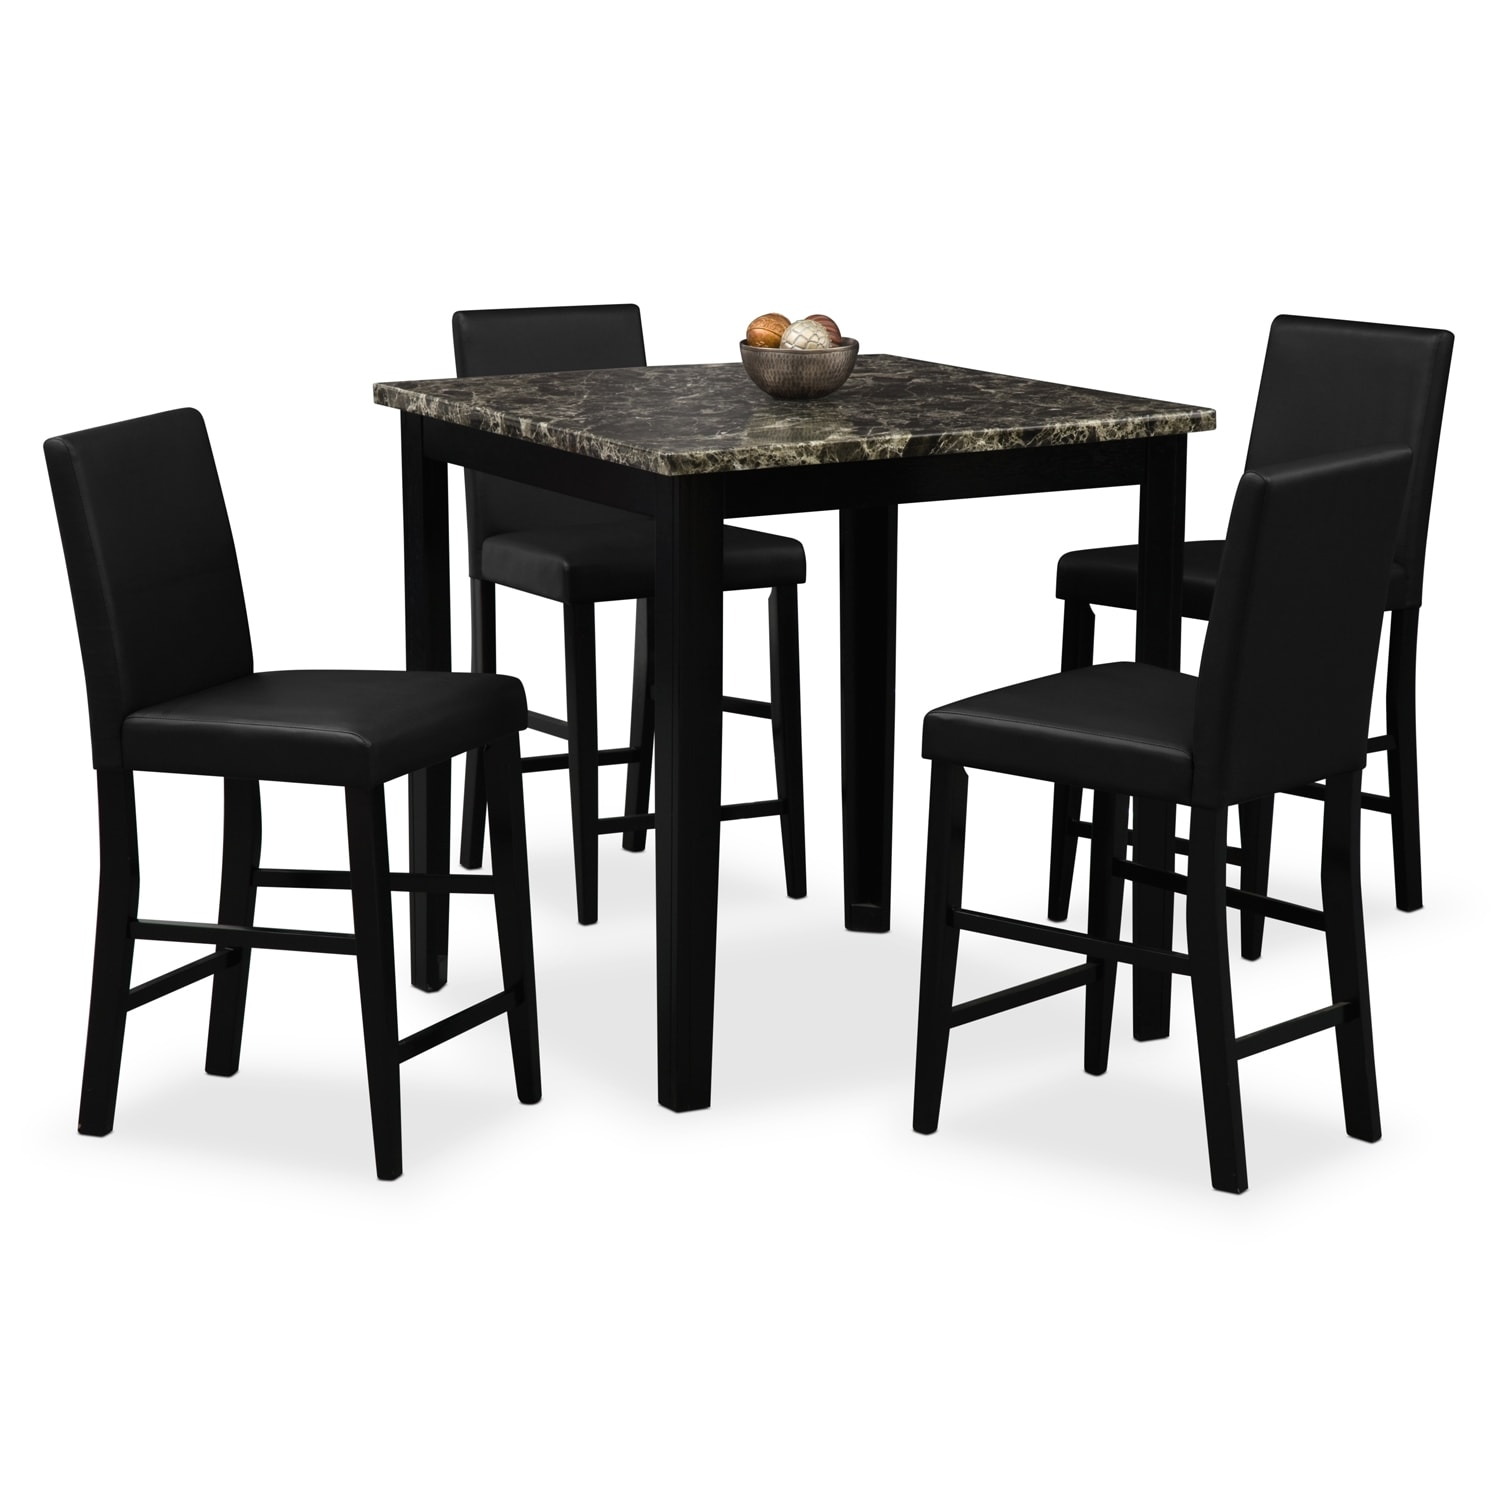 Shadow counter height table and 4 chairs black value for Black dining room furniture